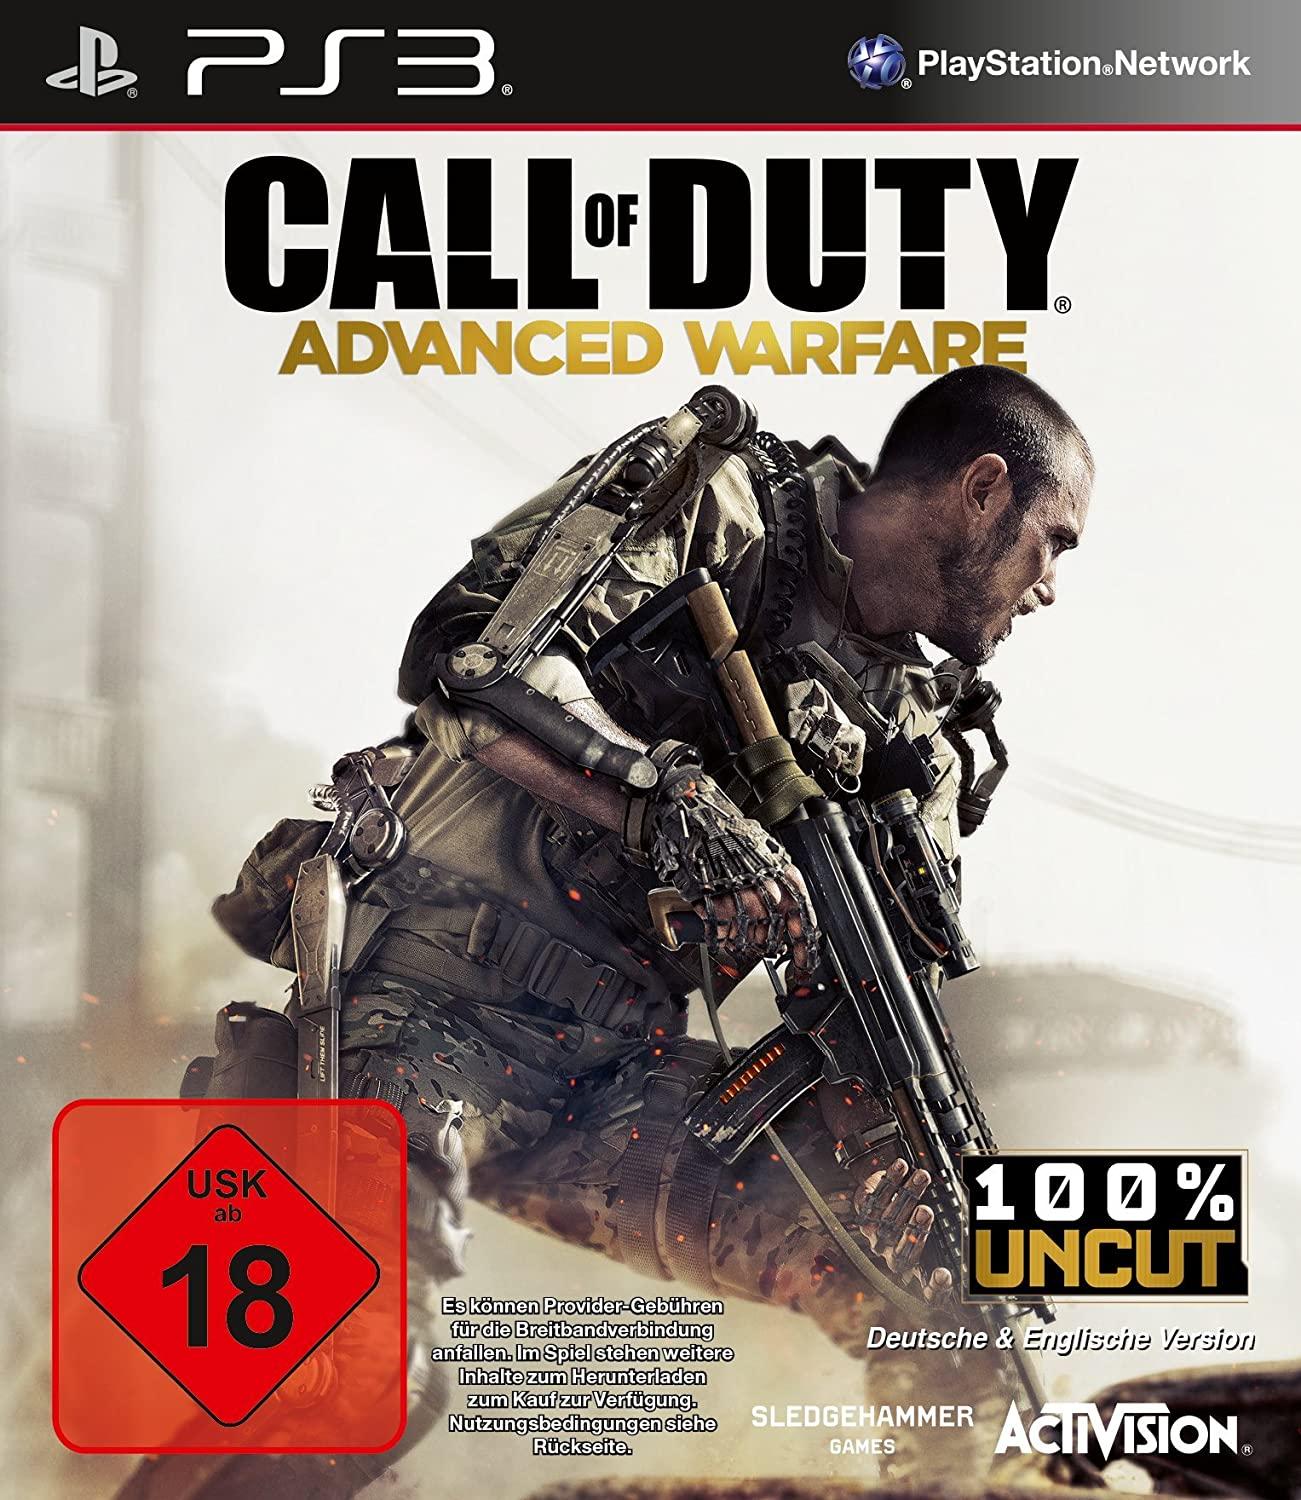 Call of Duty PS3 amazon